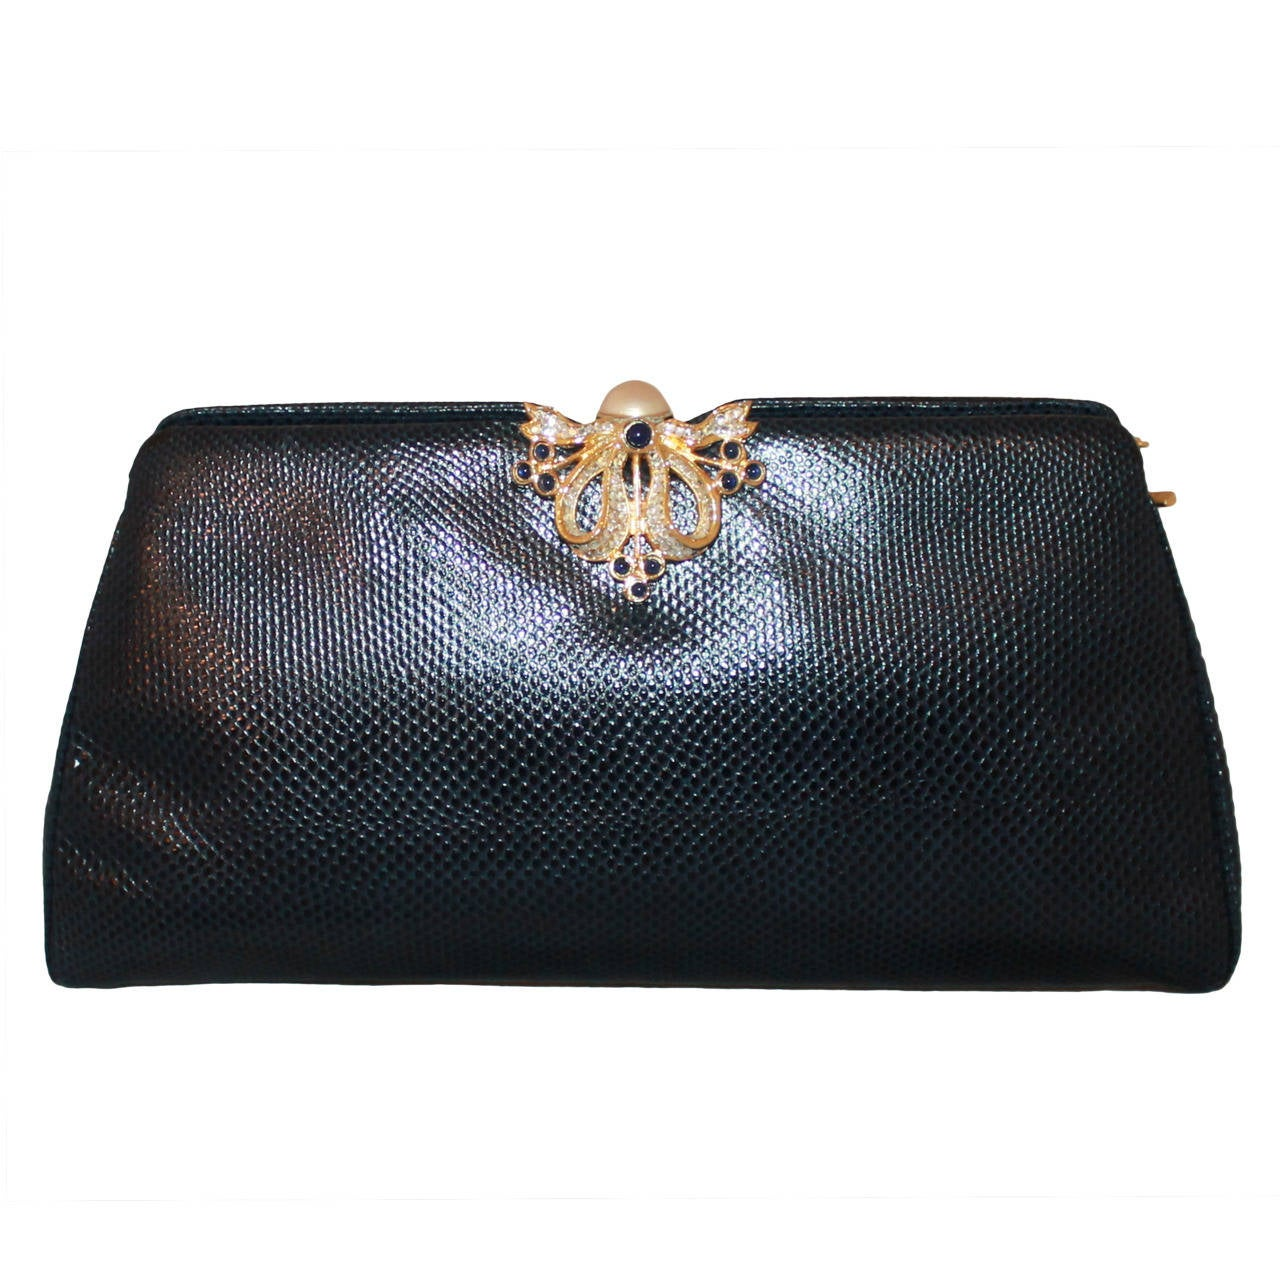 Judith Leiber 1980s Judith Leiber Black Lizard Bag 0d4is